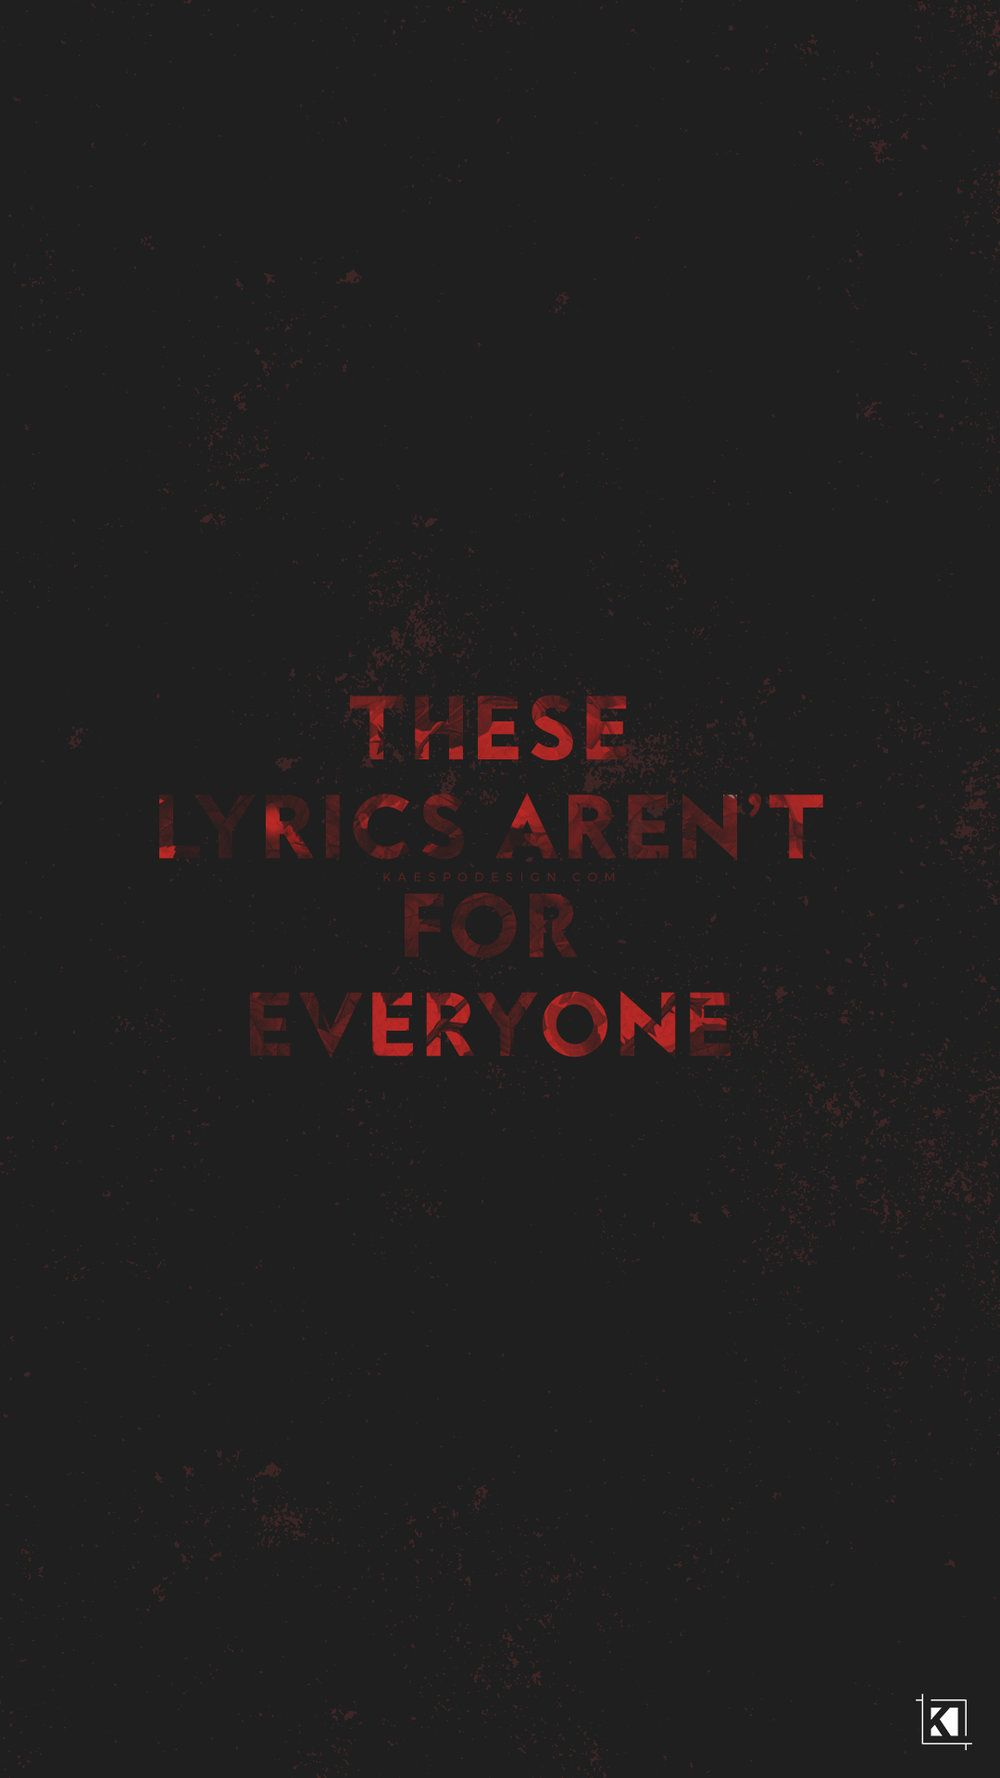 Kitchen Sink Twenty One Pilots Wallpaper fairly local lyrics, blurryface - twenty one pilots | lockscreens